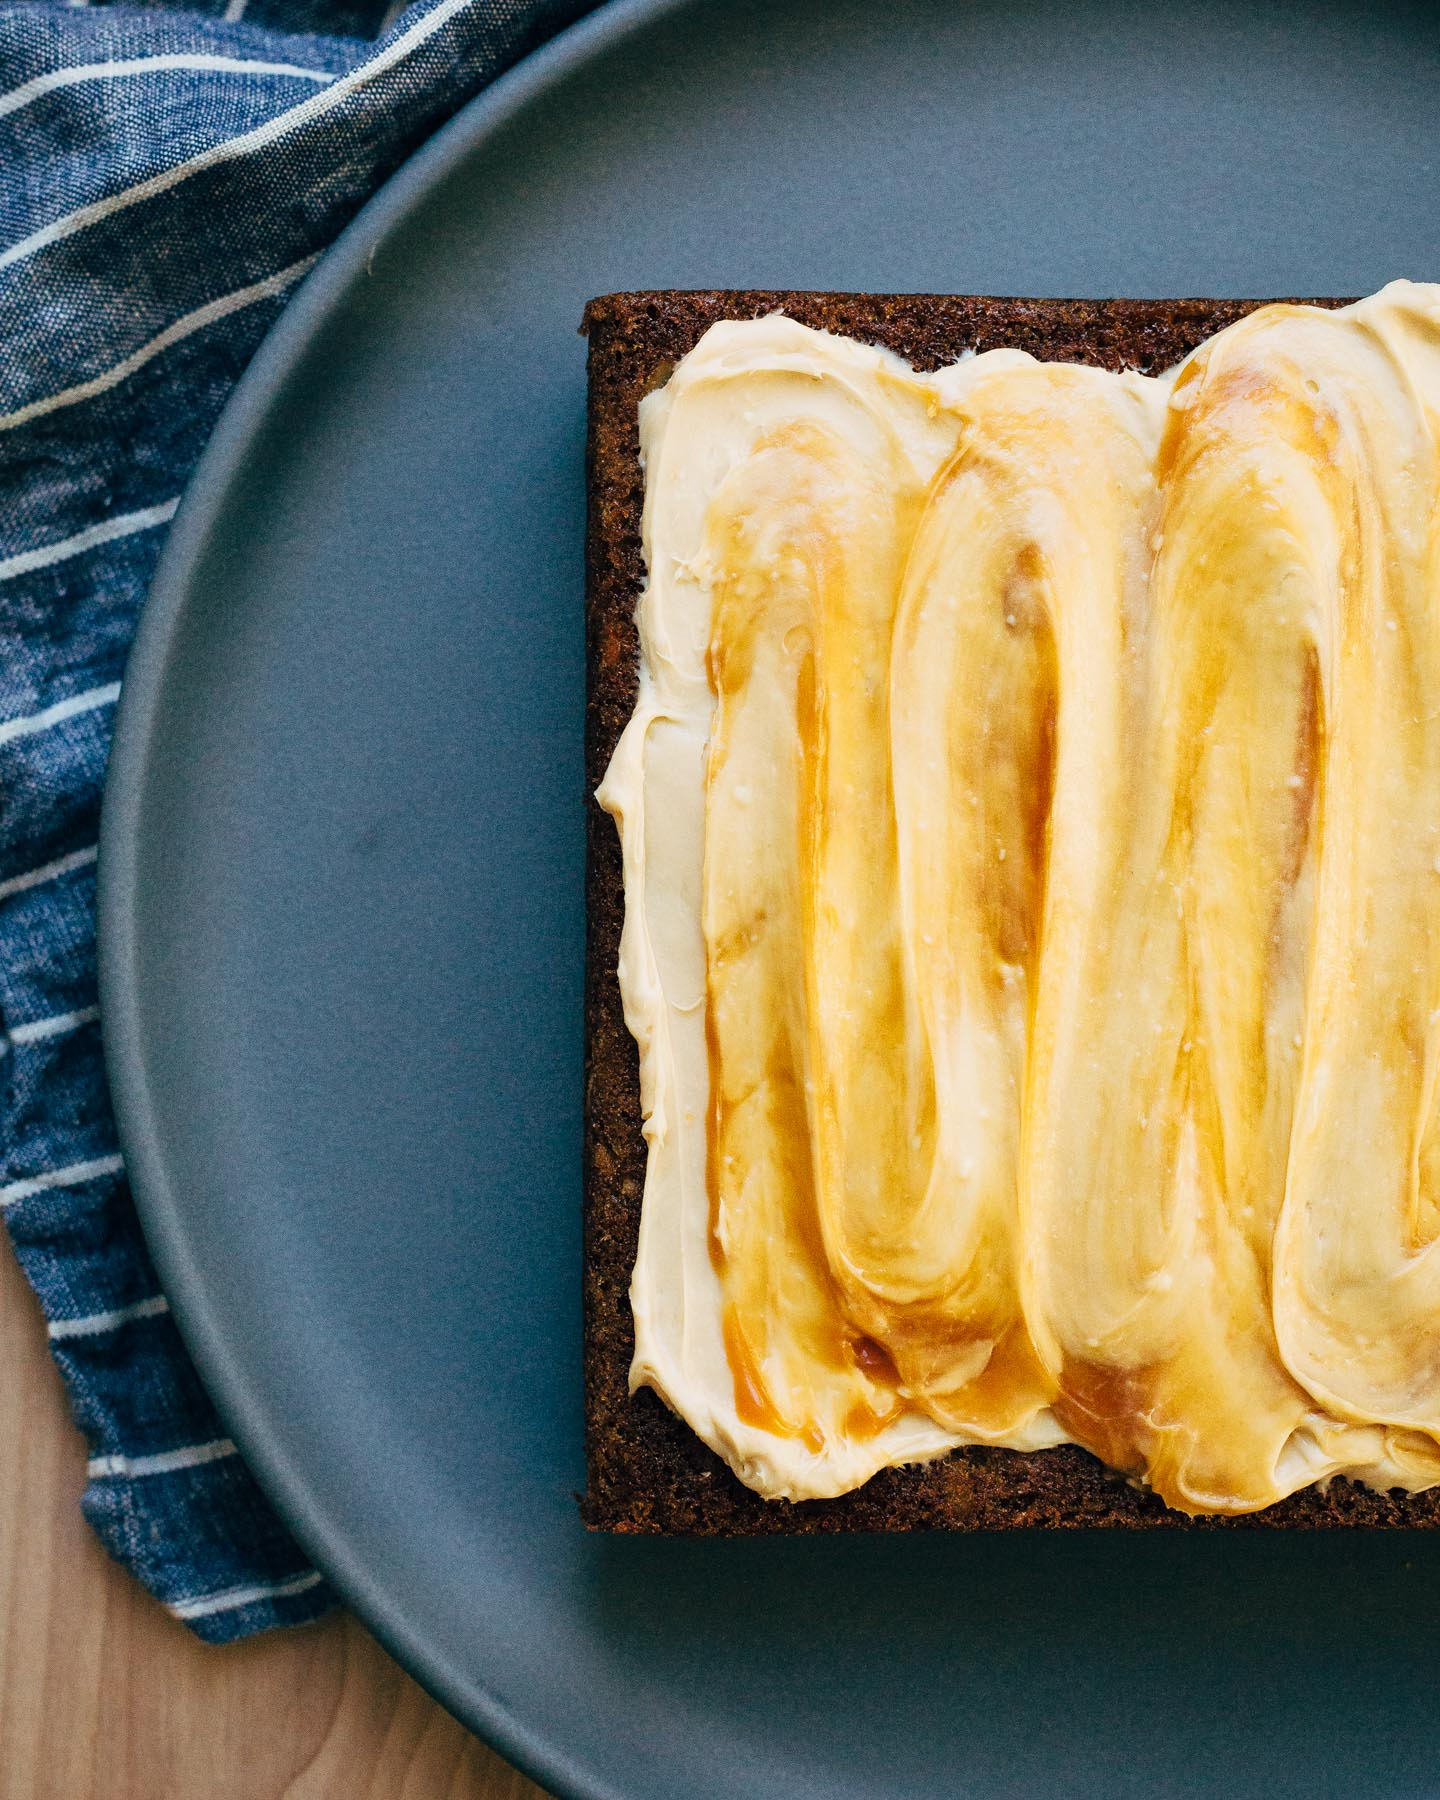 Carrot Cake with Caramel Frosting from brooklynsupper.com on foodiecrush.com